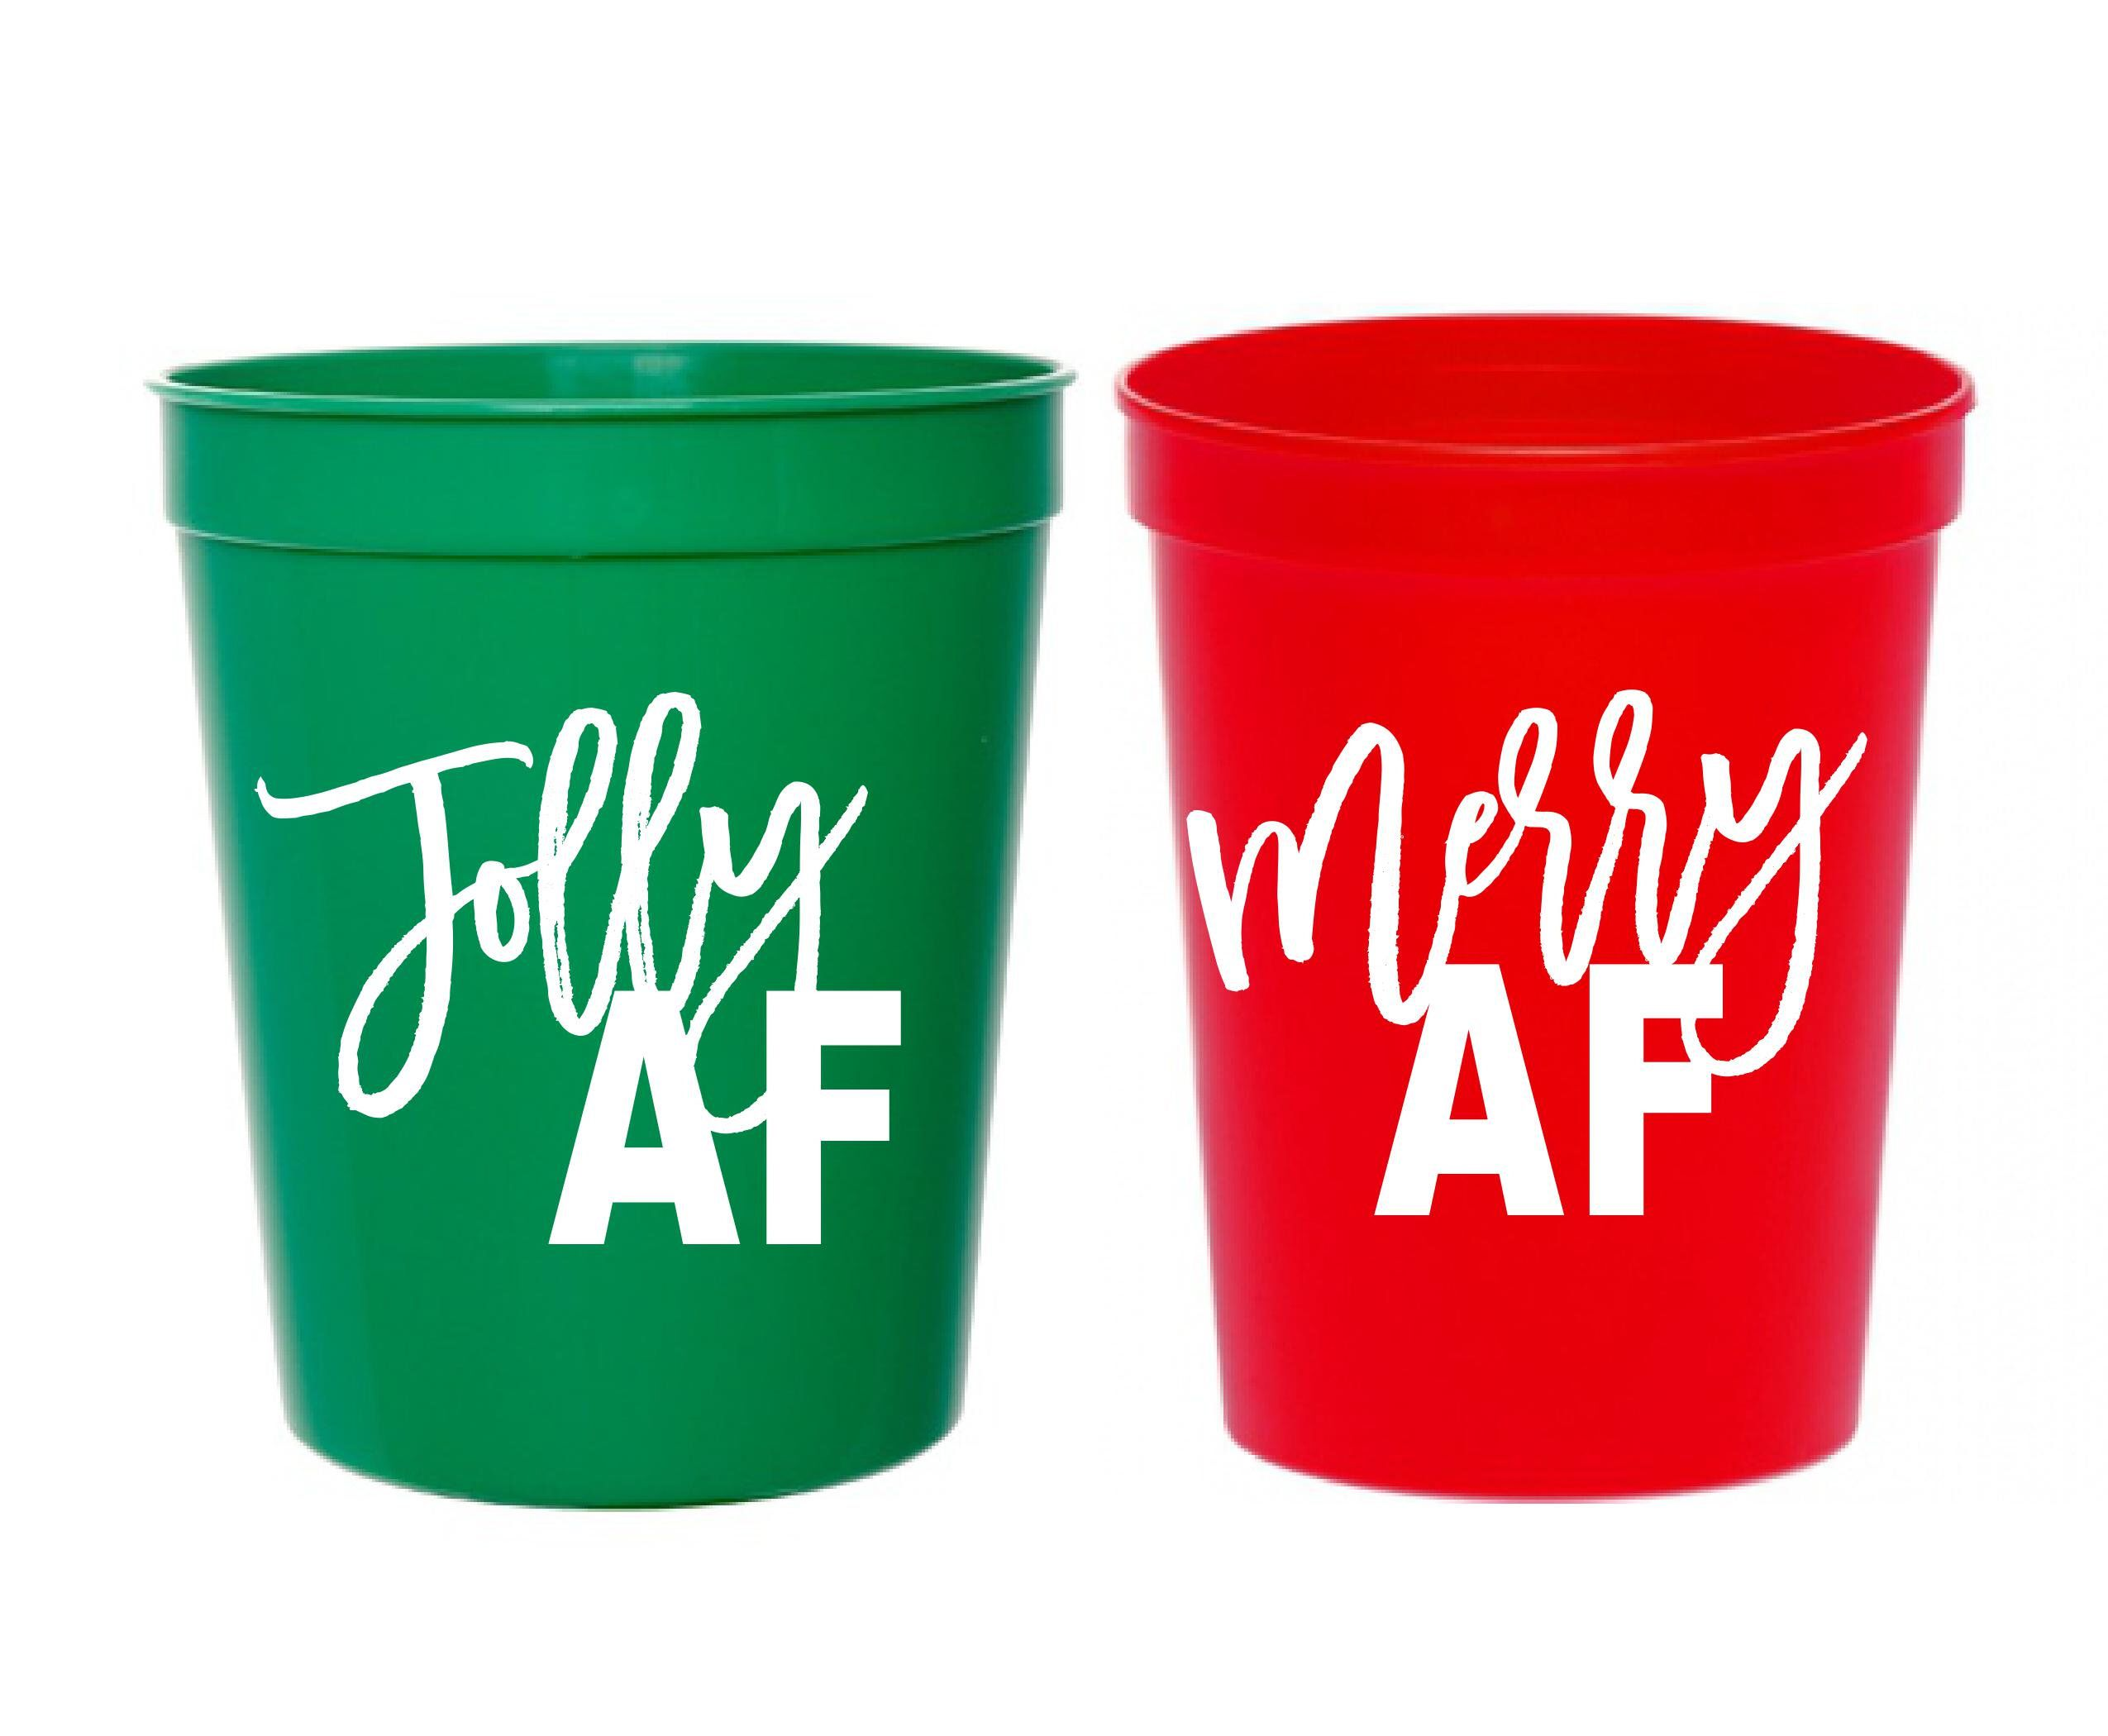 Christmas Cups Christmas Party Cups Jolly Af Merry Af Christmas Party Decor Christmas Party Decorations G Christmas Party Cups Party Cups Christmas Party